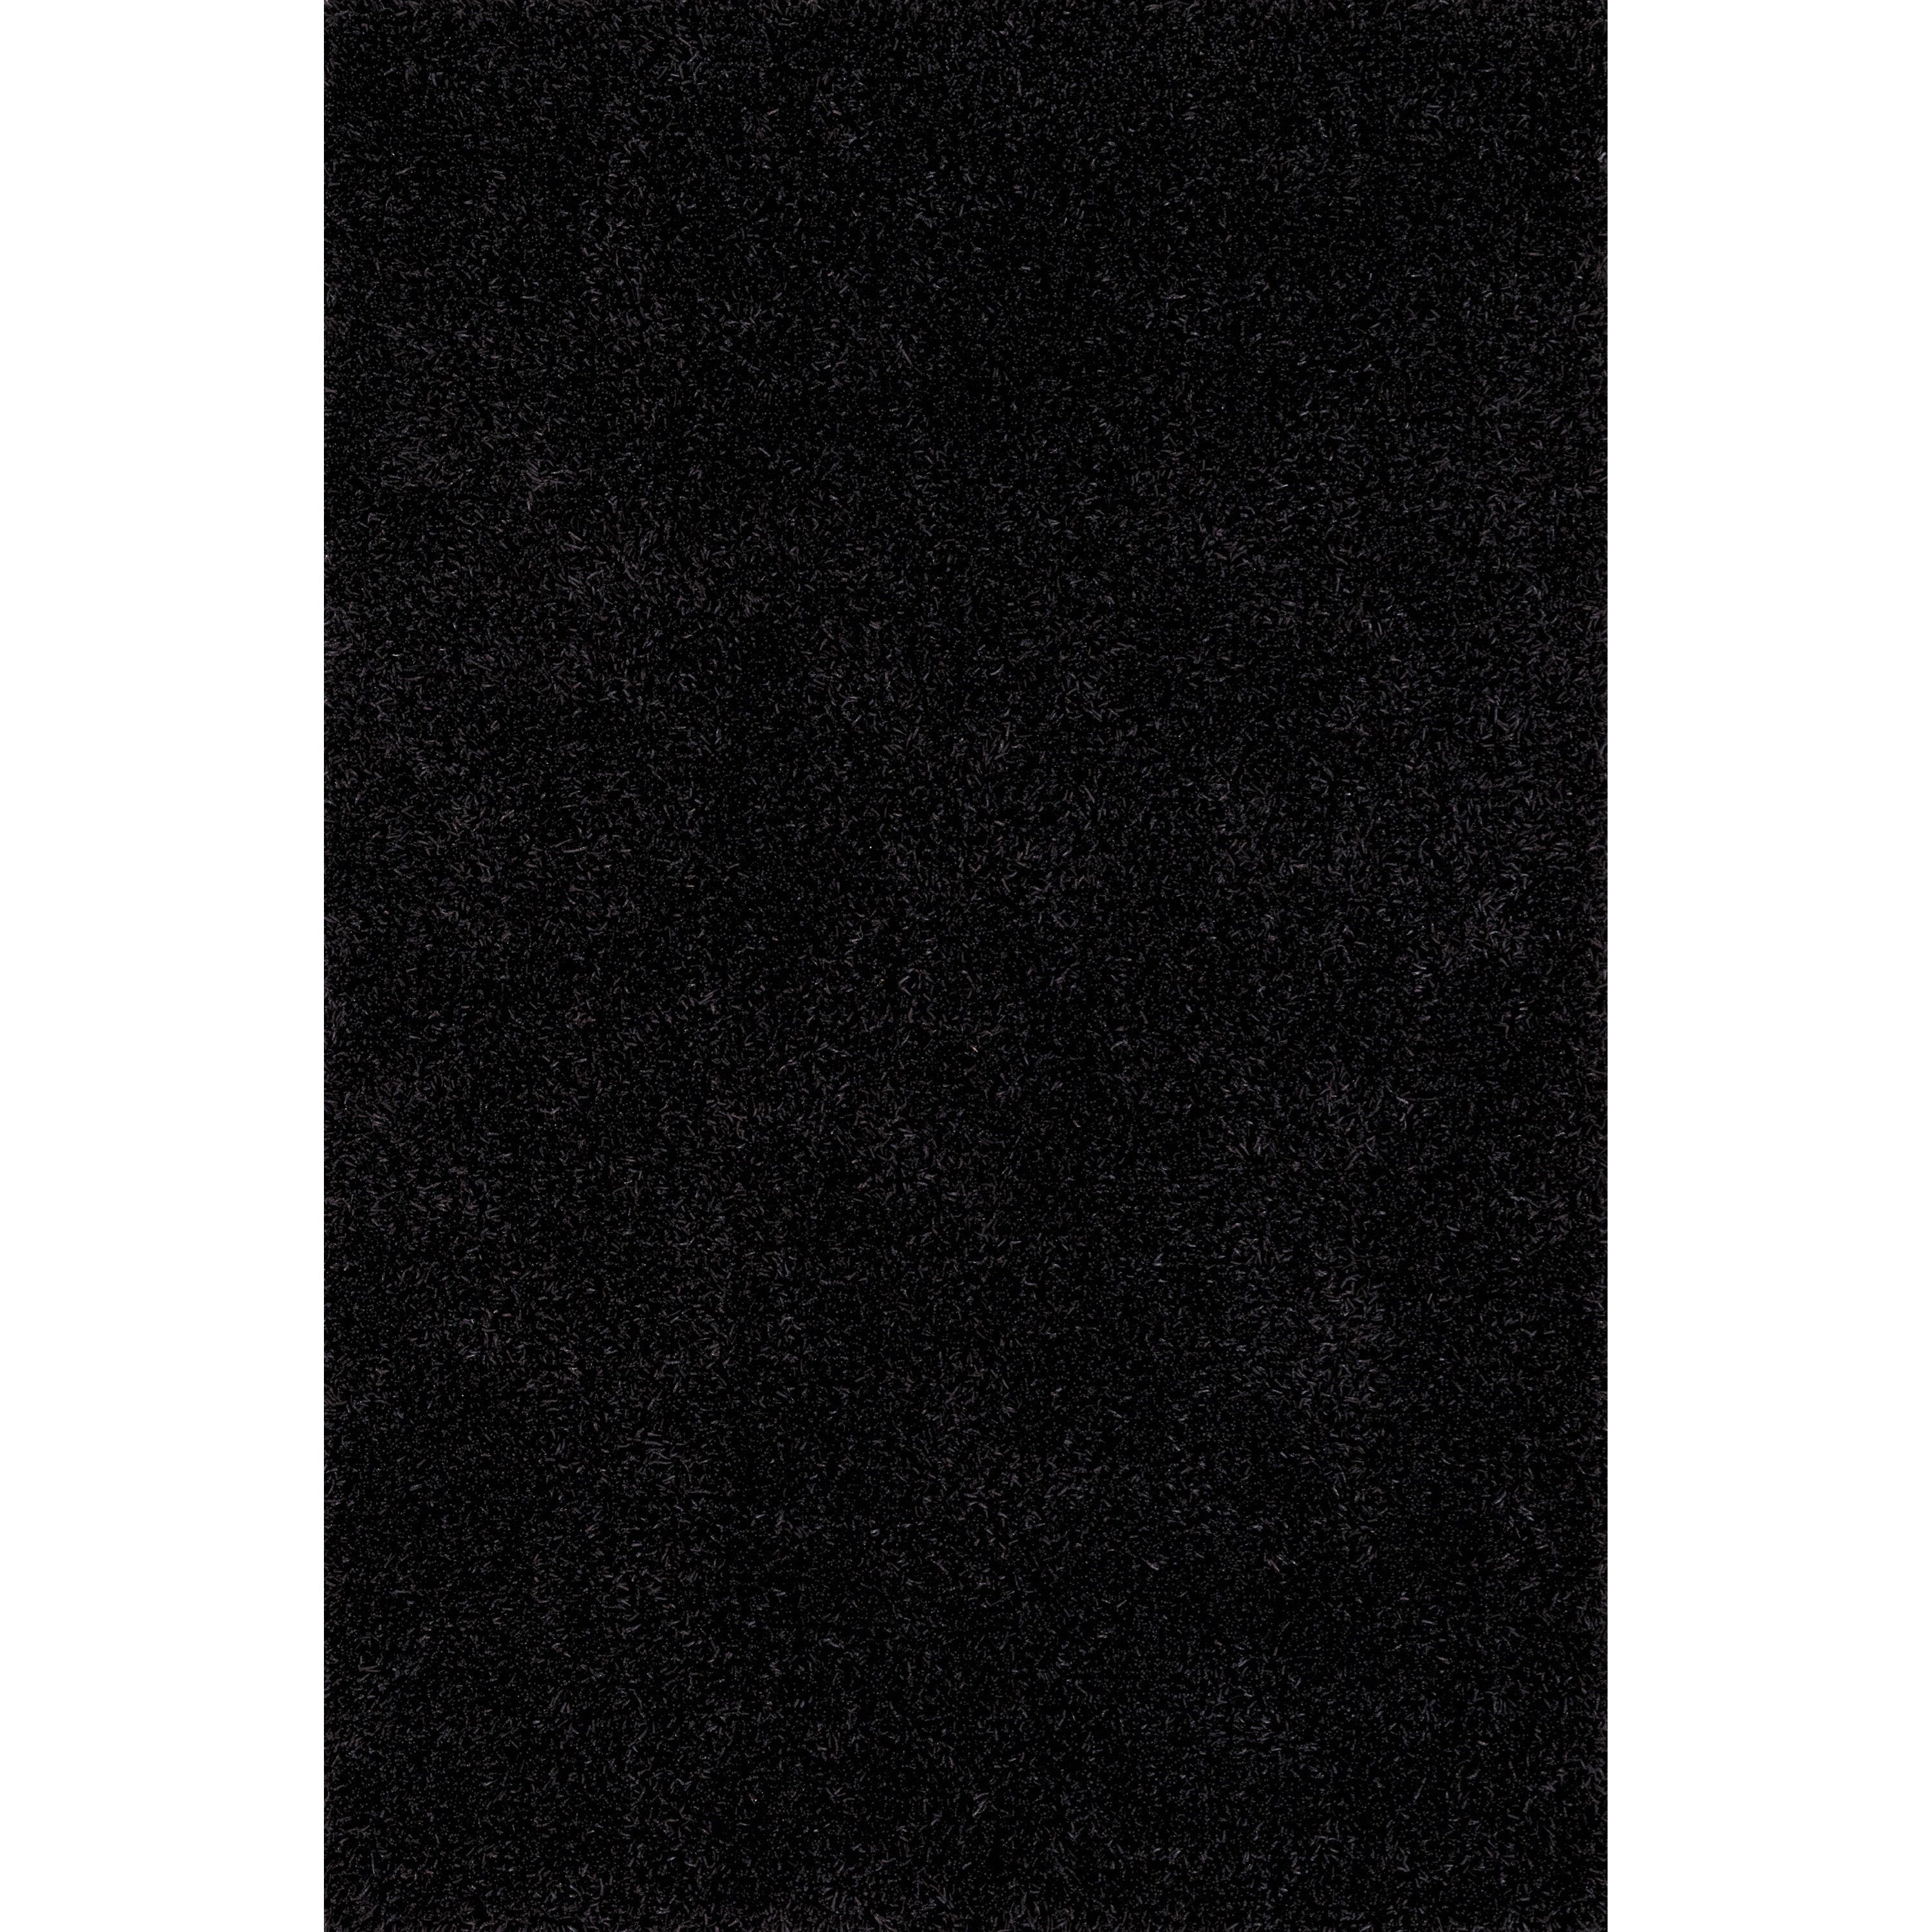 Illusions Black 9'X13' Rug by Dalyn at Sadler's Home Furnishings